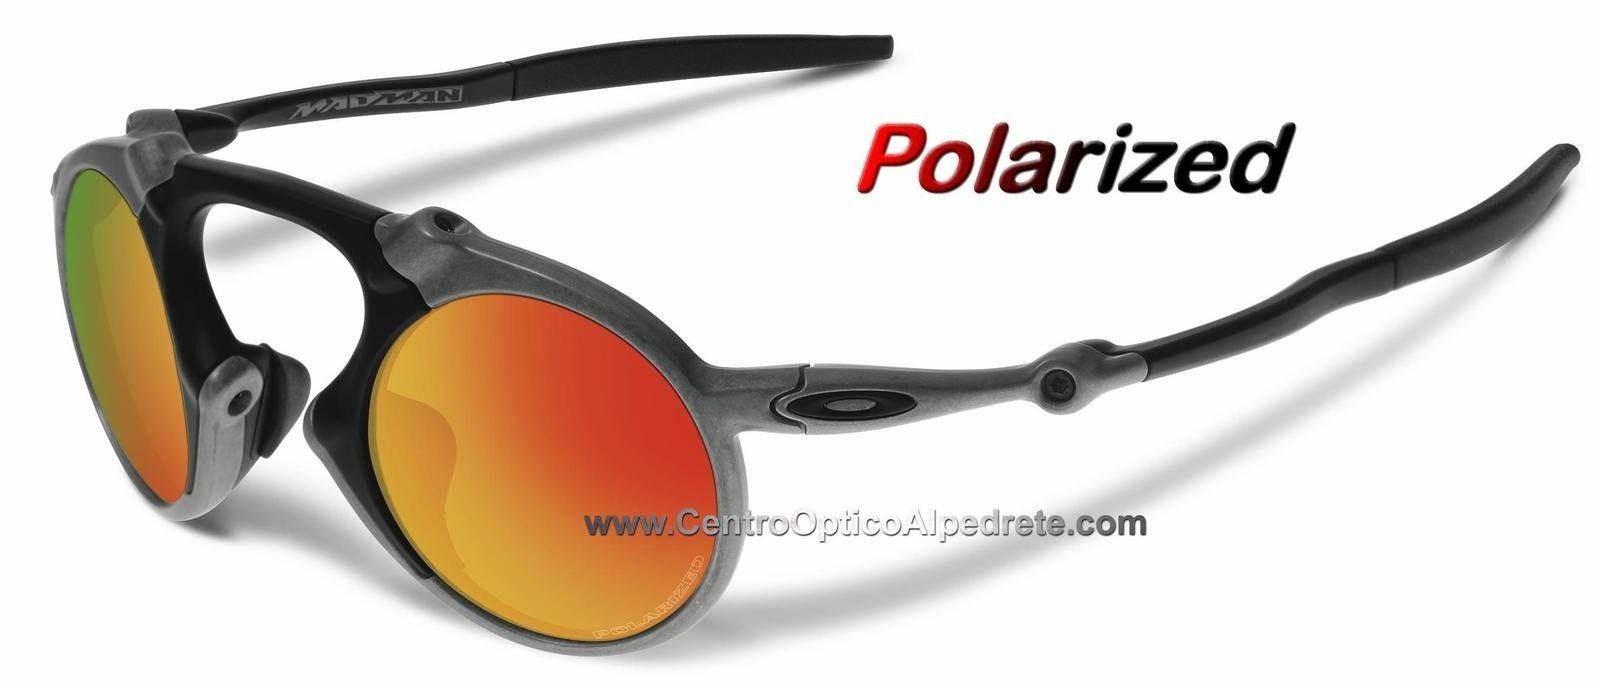 Oakley MadMan XRaw / Fire Iridium Polarized SKU OO6019-01 - madman-sraw-fire-iridium-polarized-oo6019-01.jpg